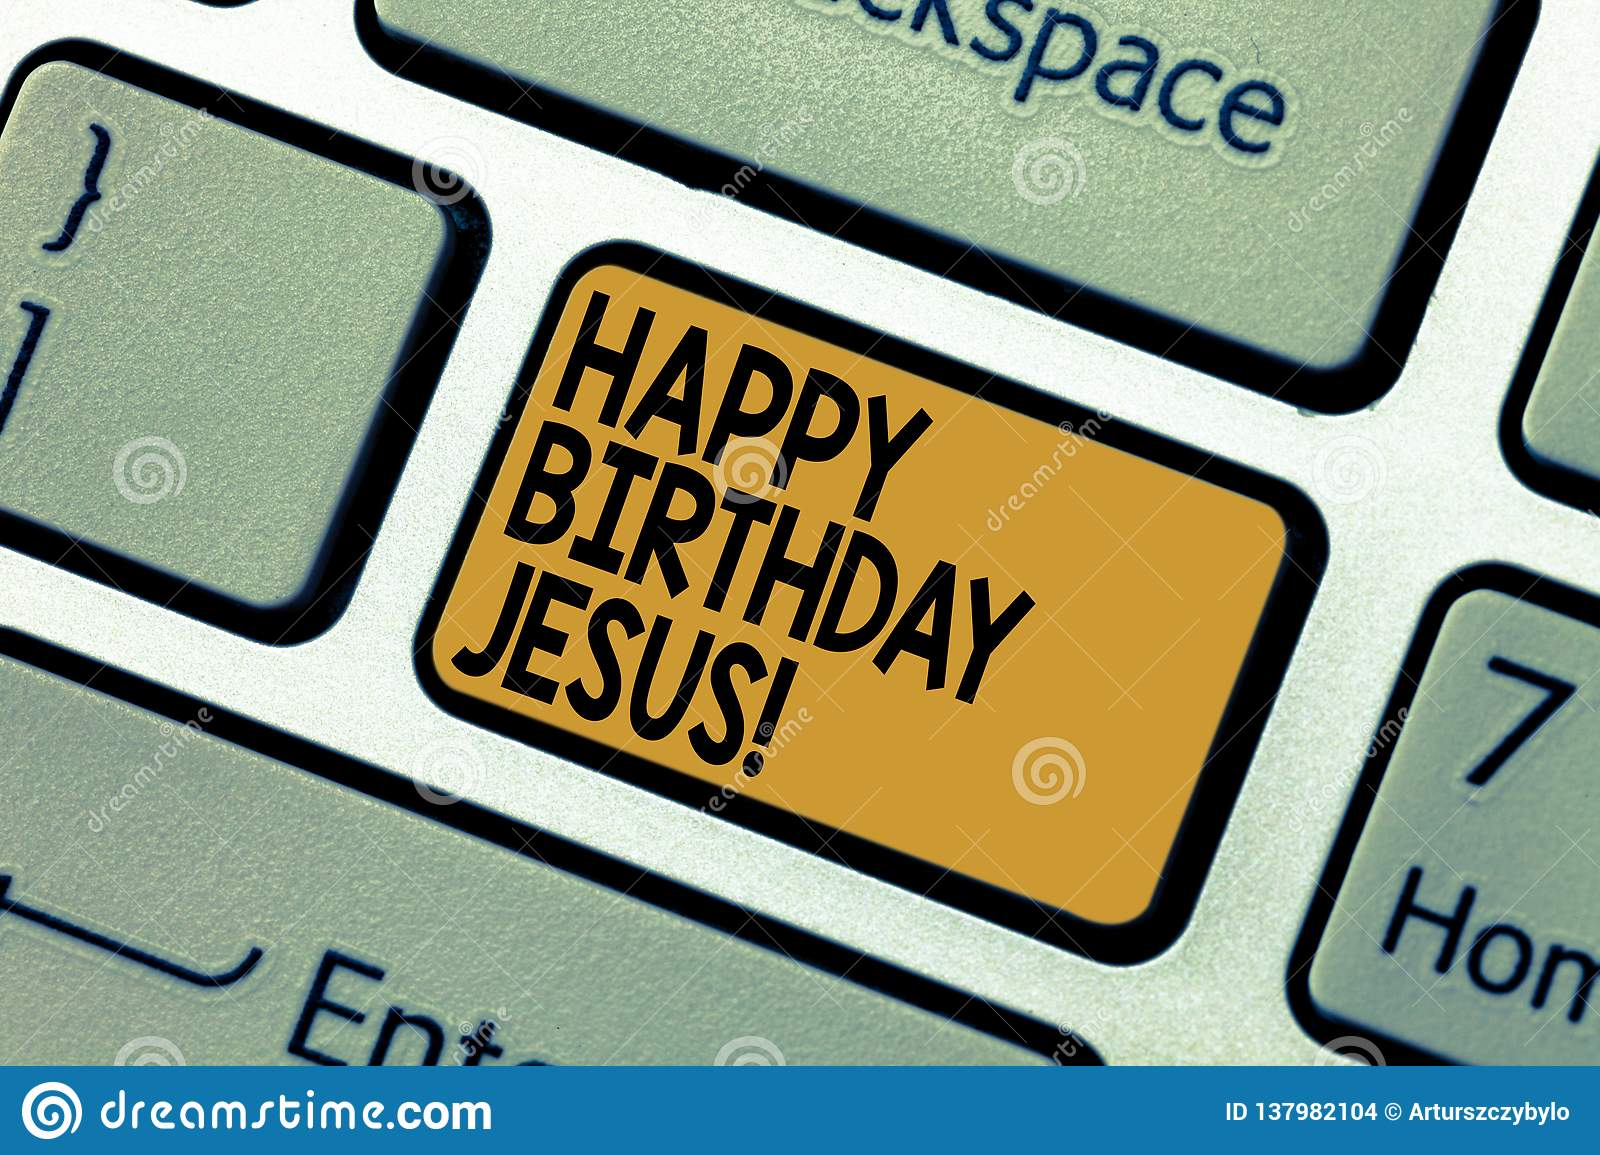 Word Writing Text Happy Birthday Jesus Business Concept For Celebrating The Birth Of The Holy God Christmas Day Stock Photo Image Of Decoration Birthday 137982104